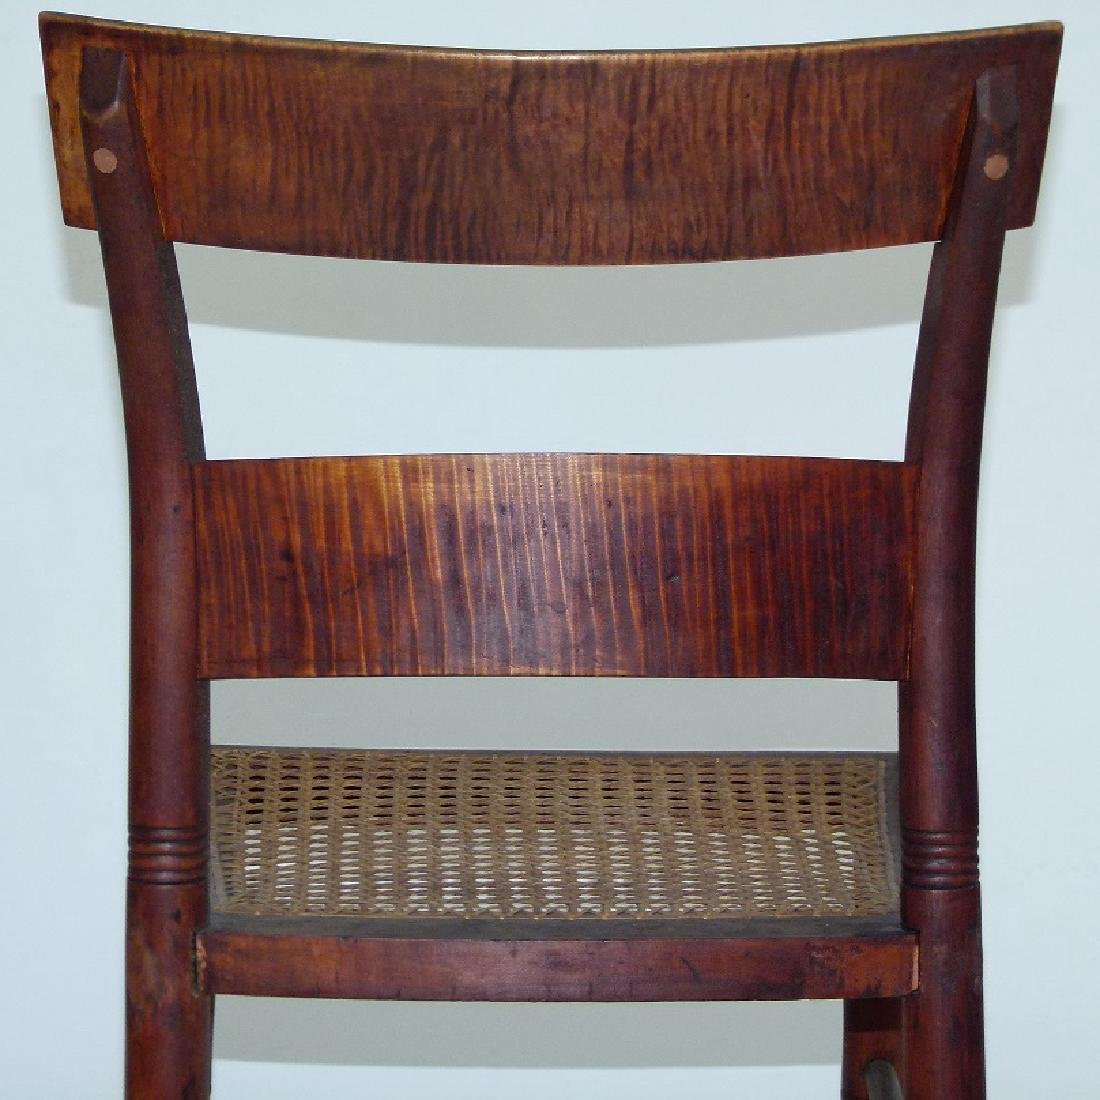 PAIR SHERATON TIGER MAPLE SIDE CHAIRS 19TH C. - 6